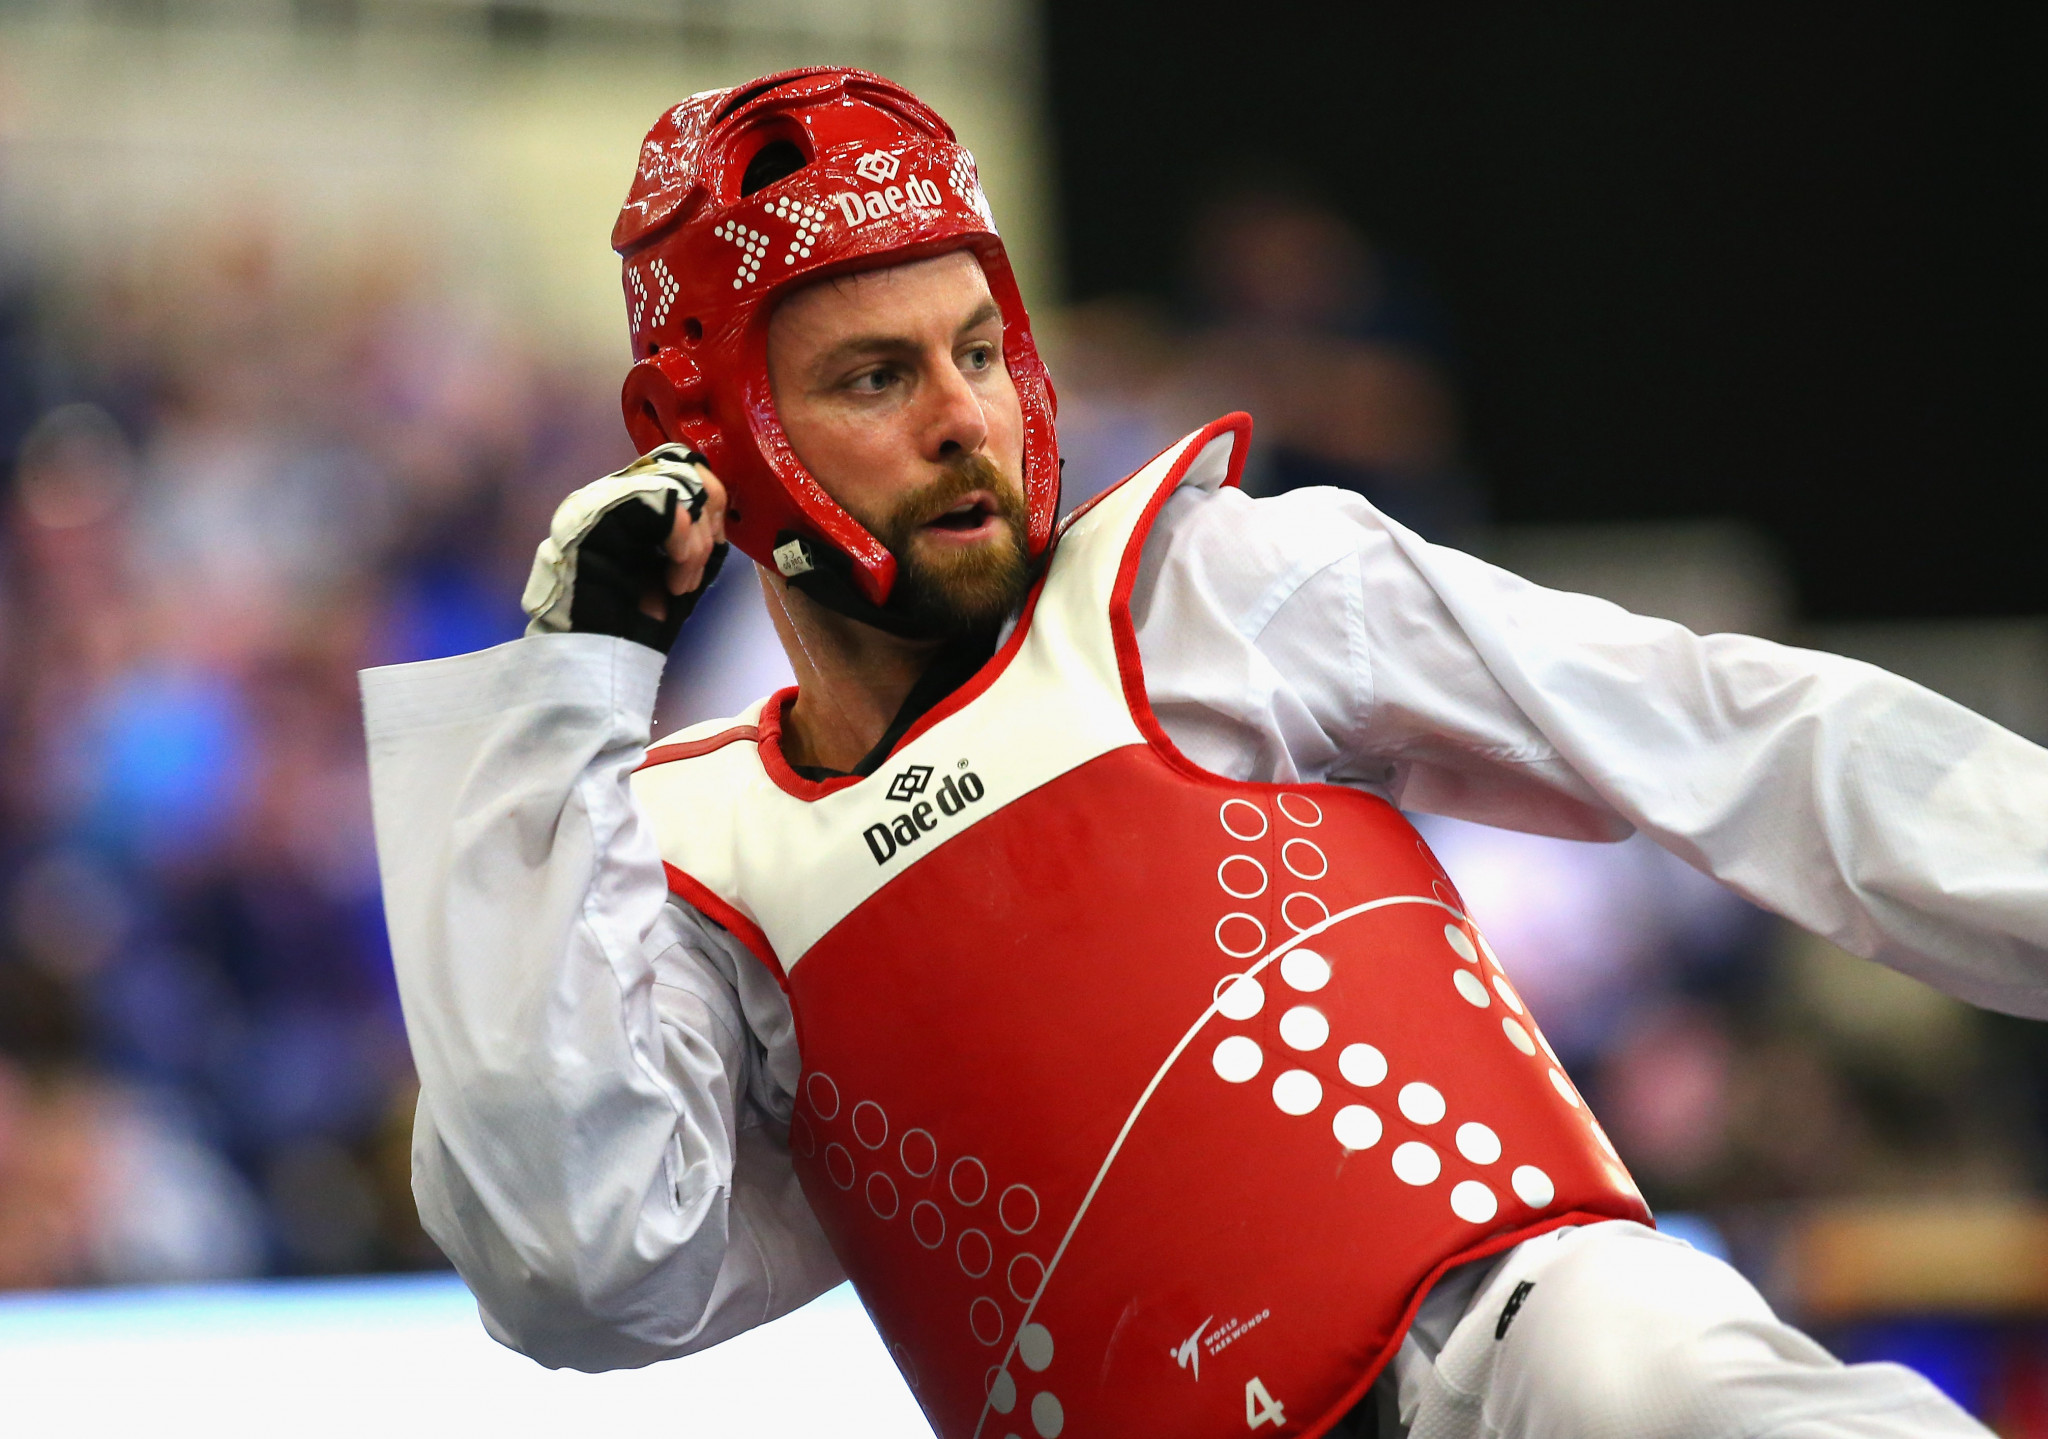 Damon Sansum finished his taekwondo career with a world silver and bronze ©Getty Images